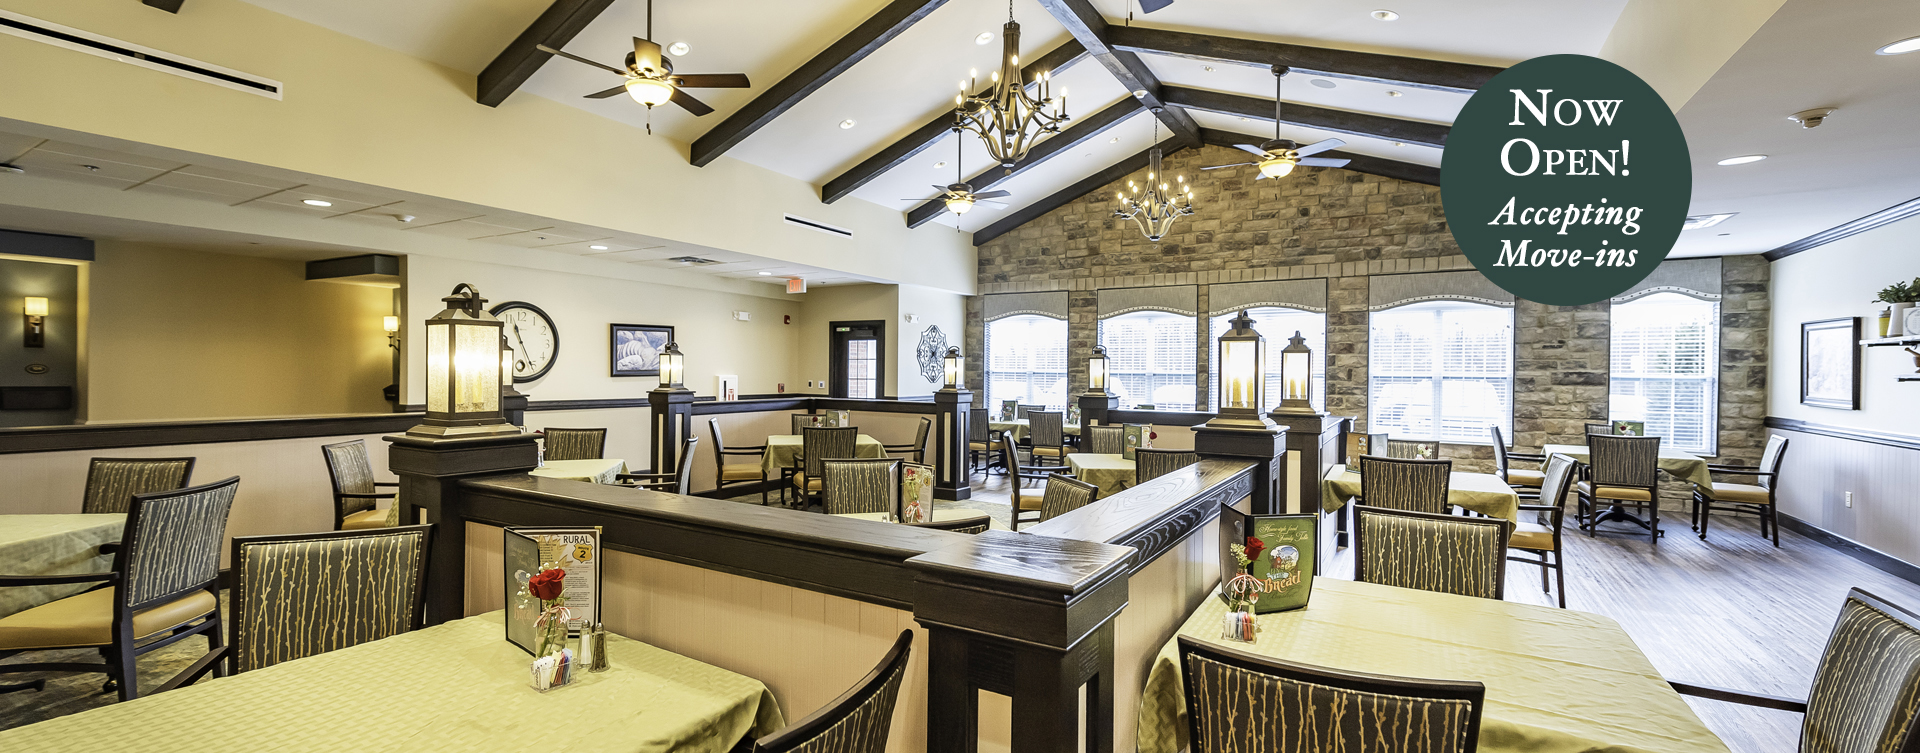 Enjoy homestyle food with made-from-scratch recipes in our dining room at Bickford of Canton